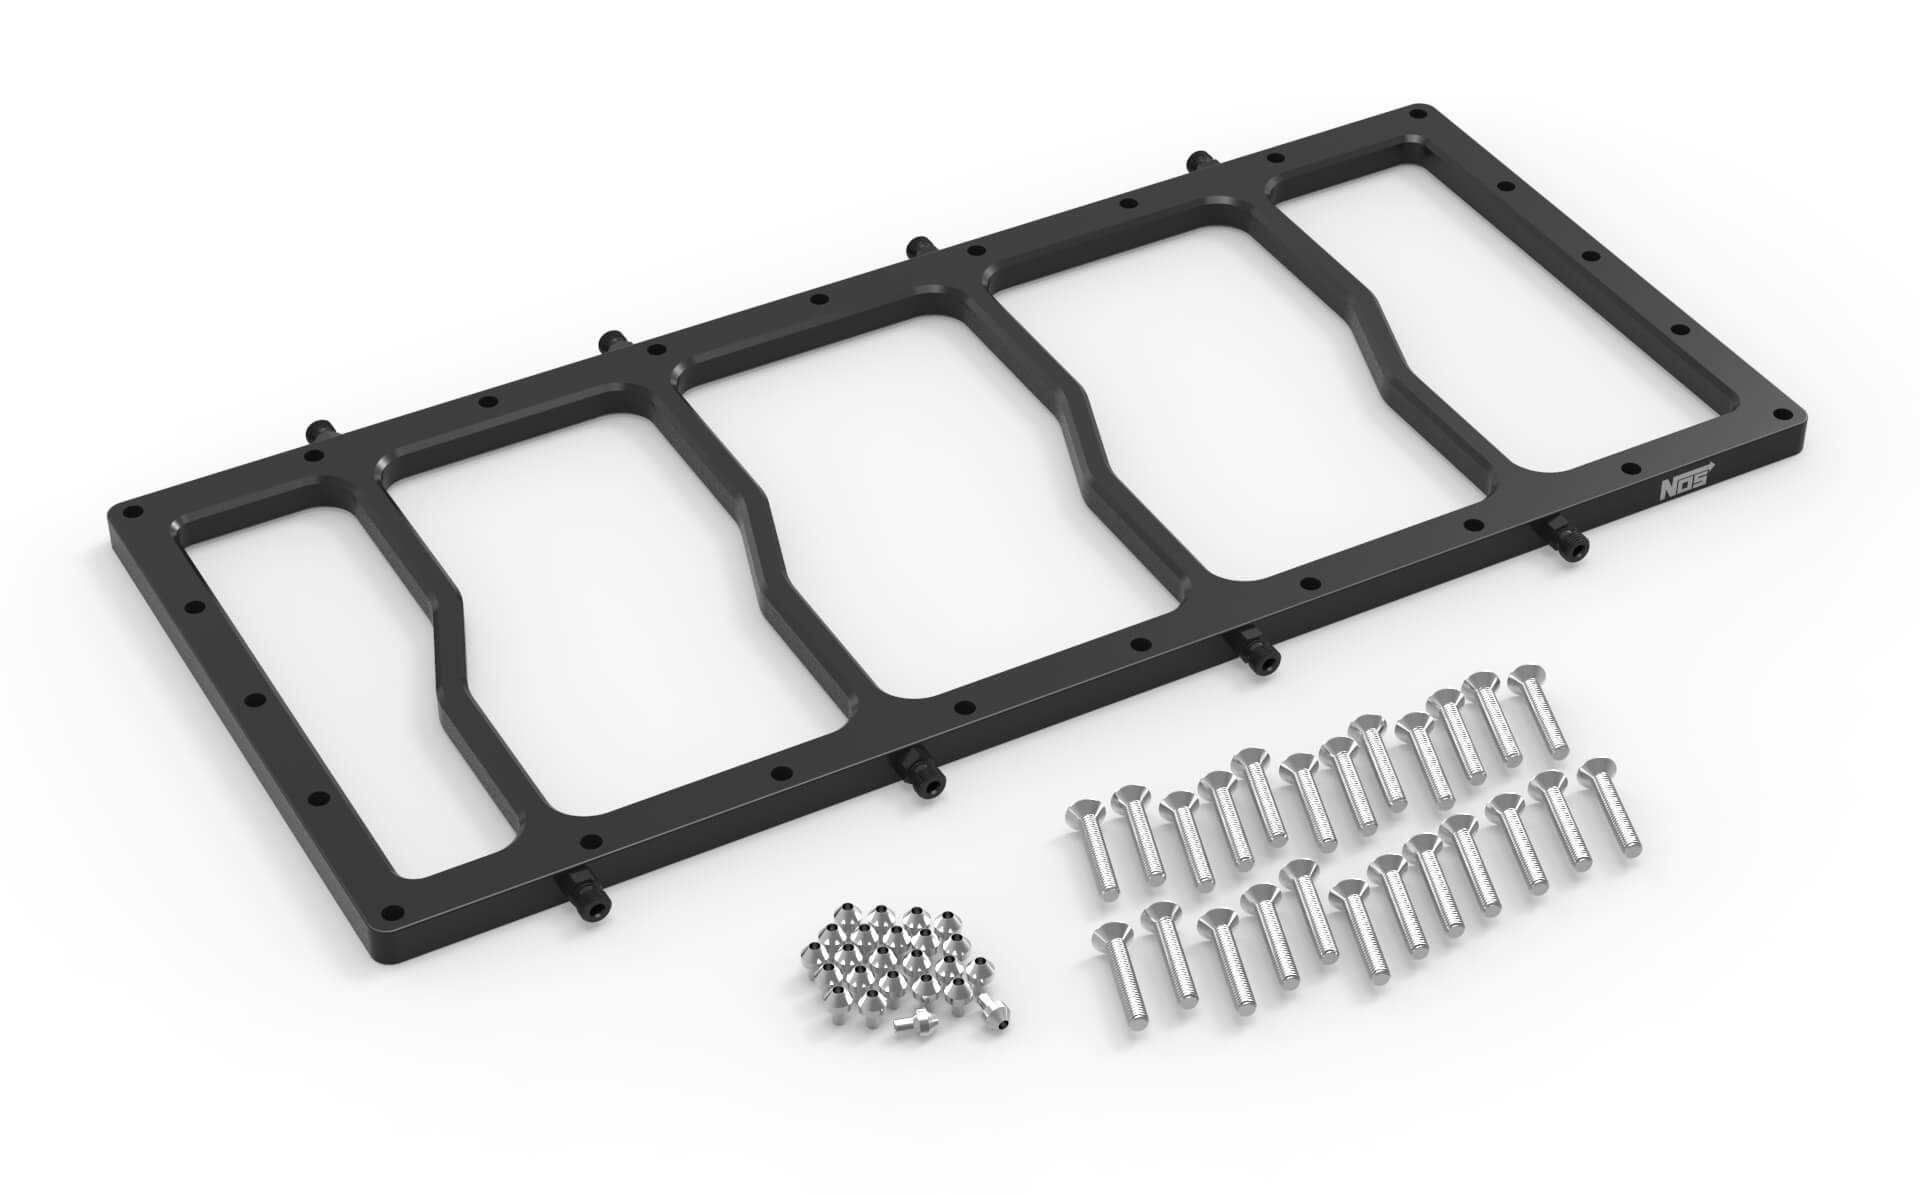 NOS Dry Nitrous Plate for Sniper EFI Fabricated Race Series LS Intake Manifolds-Black